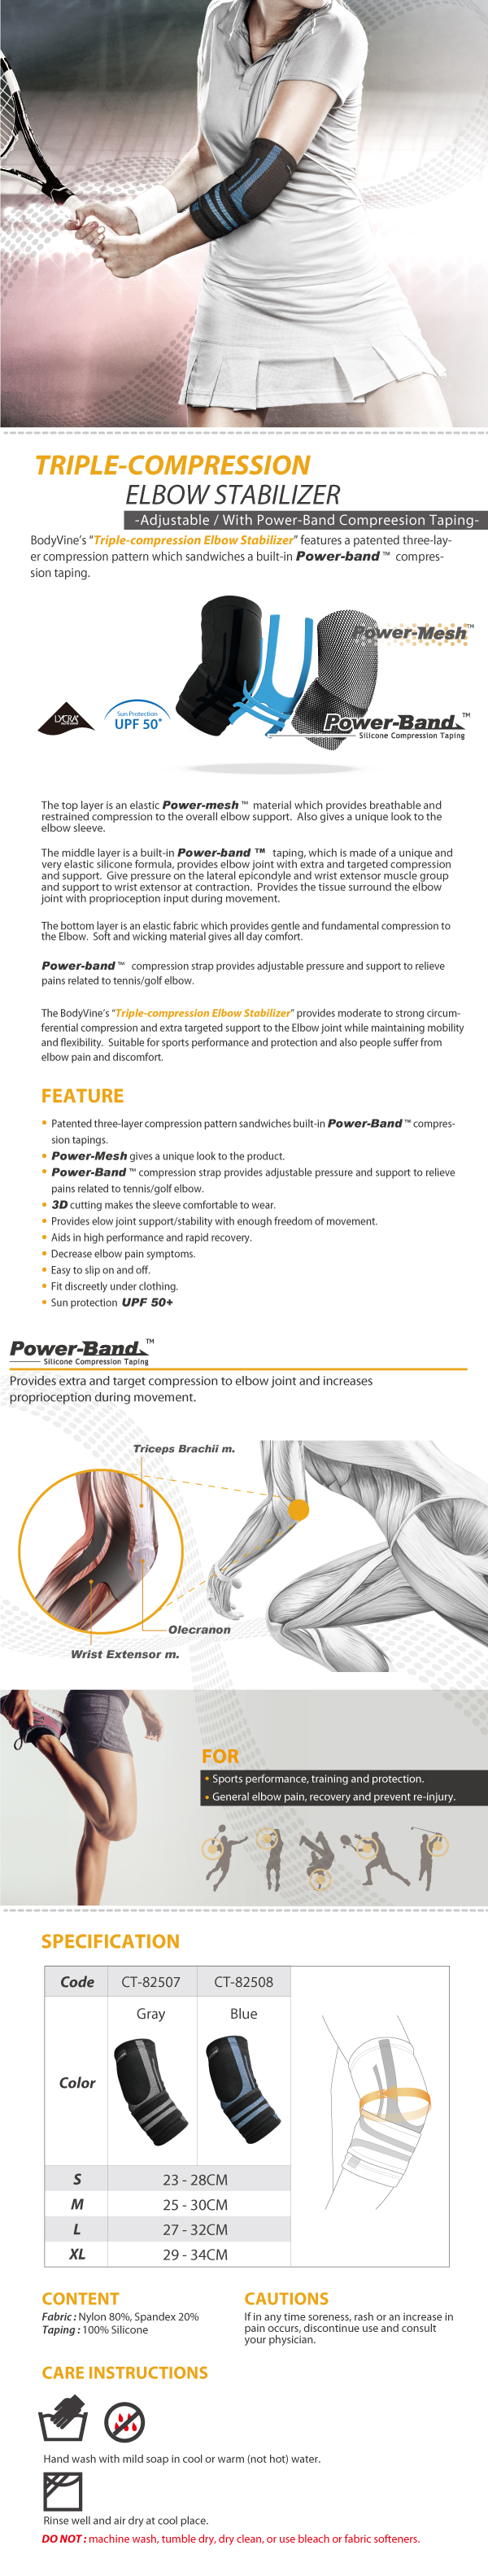 BodyVine-Triple-Compressin-Elbow-Stabilizer_Power-Band-Compression-Taping